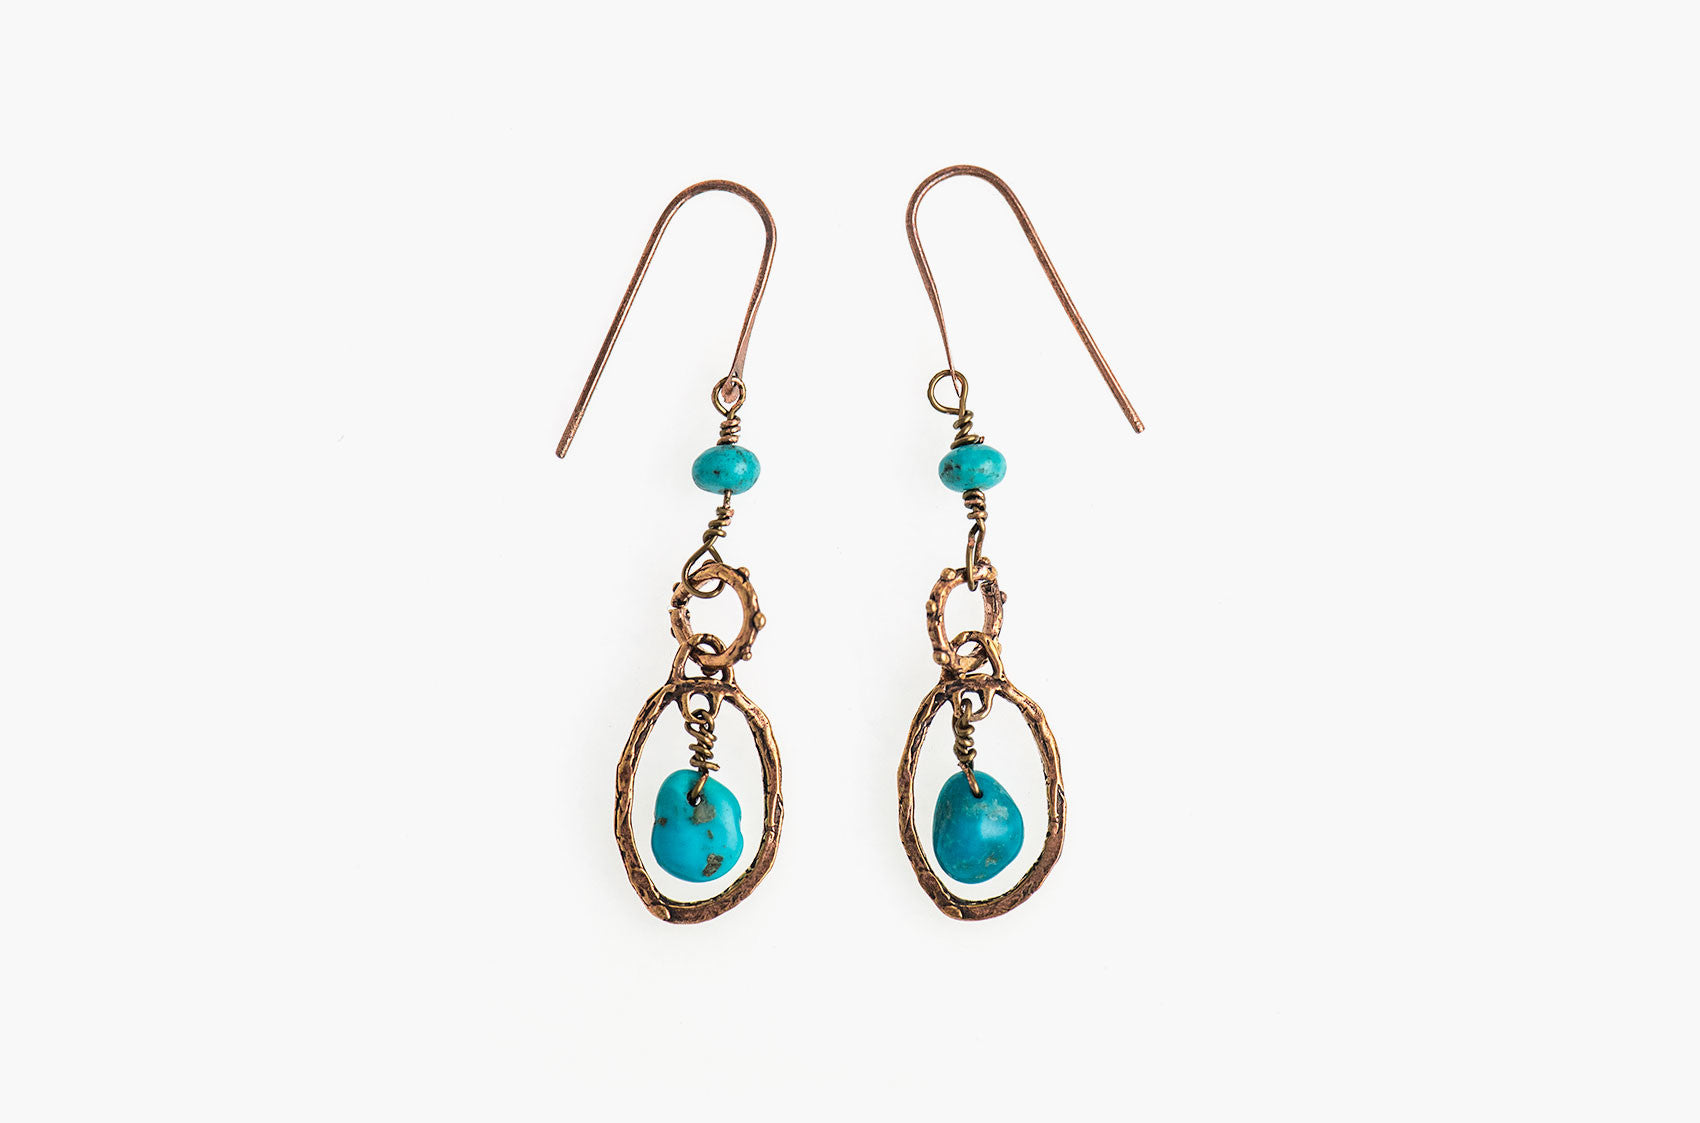 Metal & Stone. Artisan bronze earrings